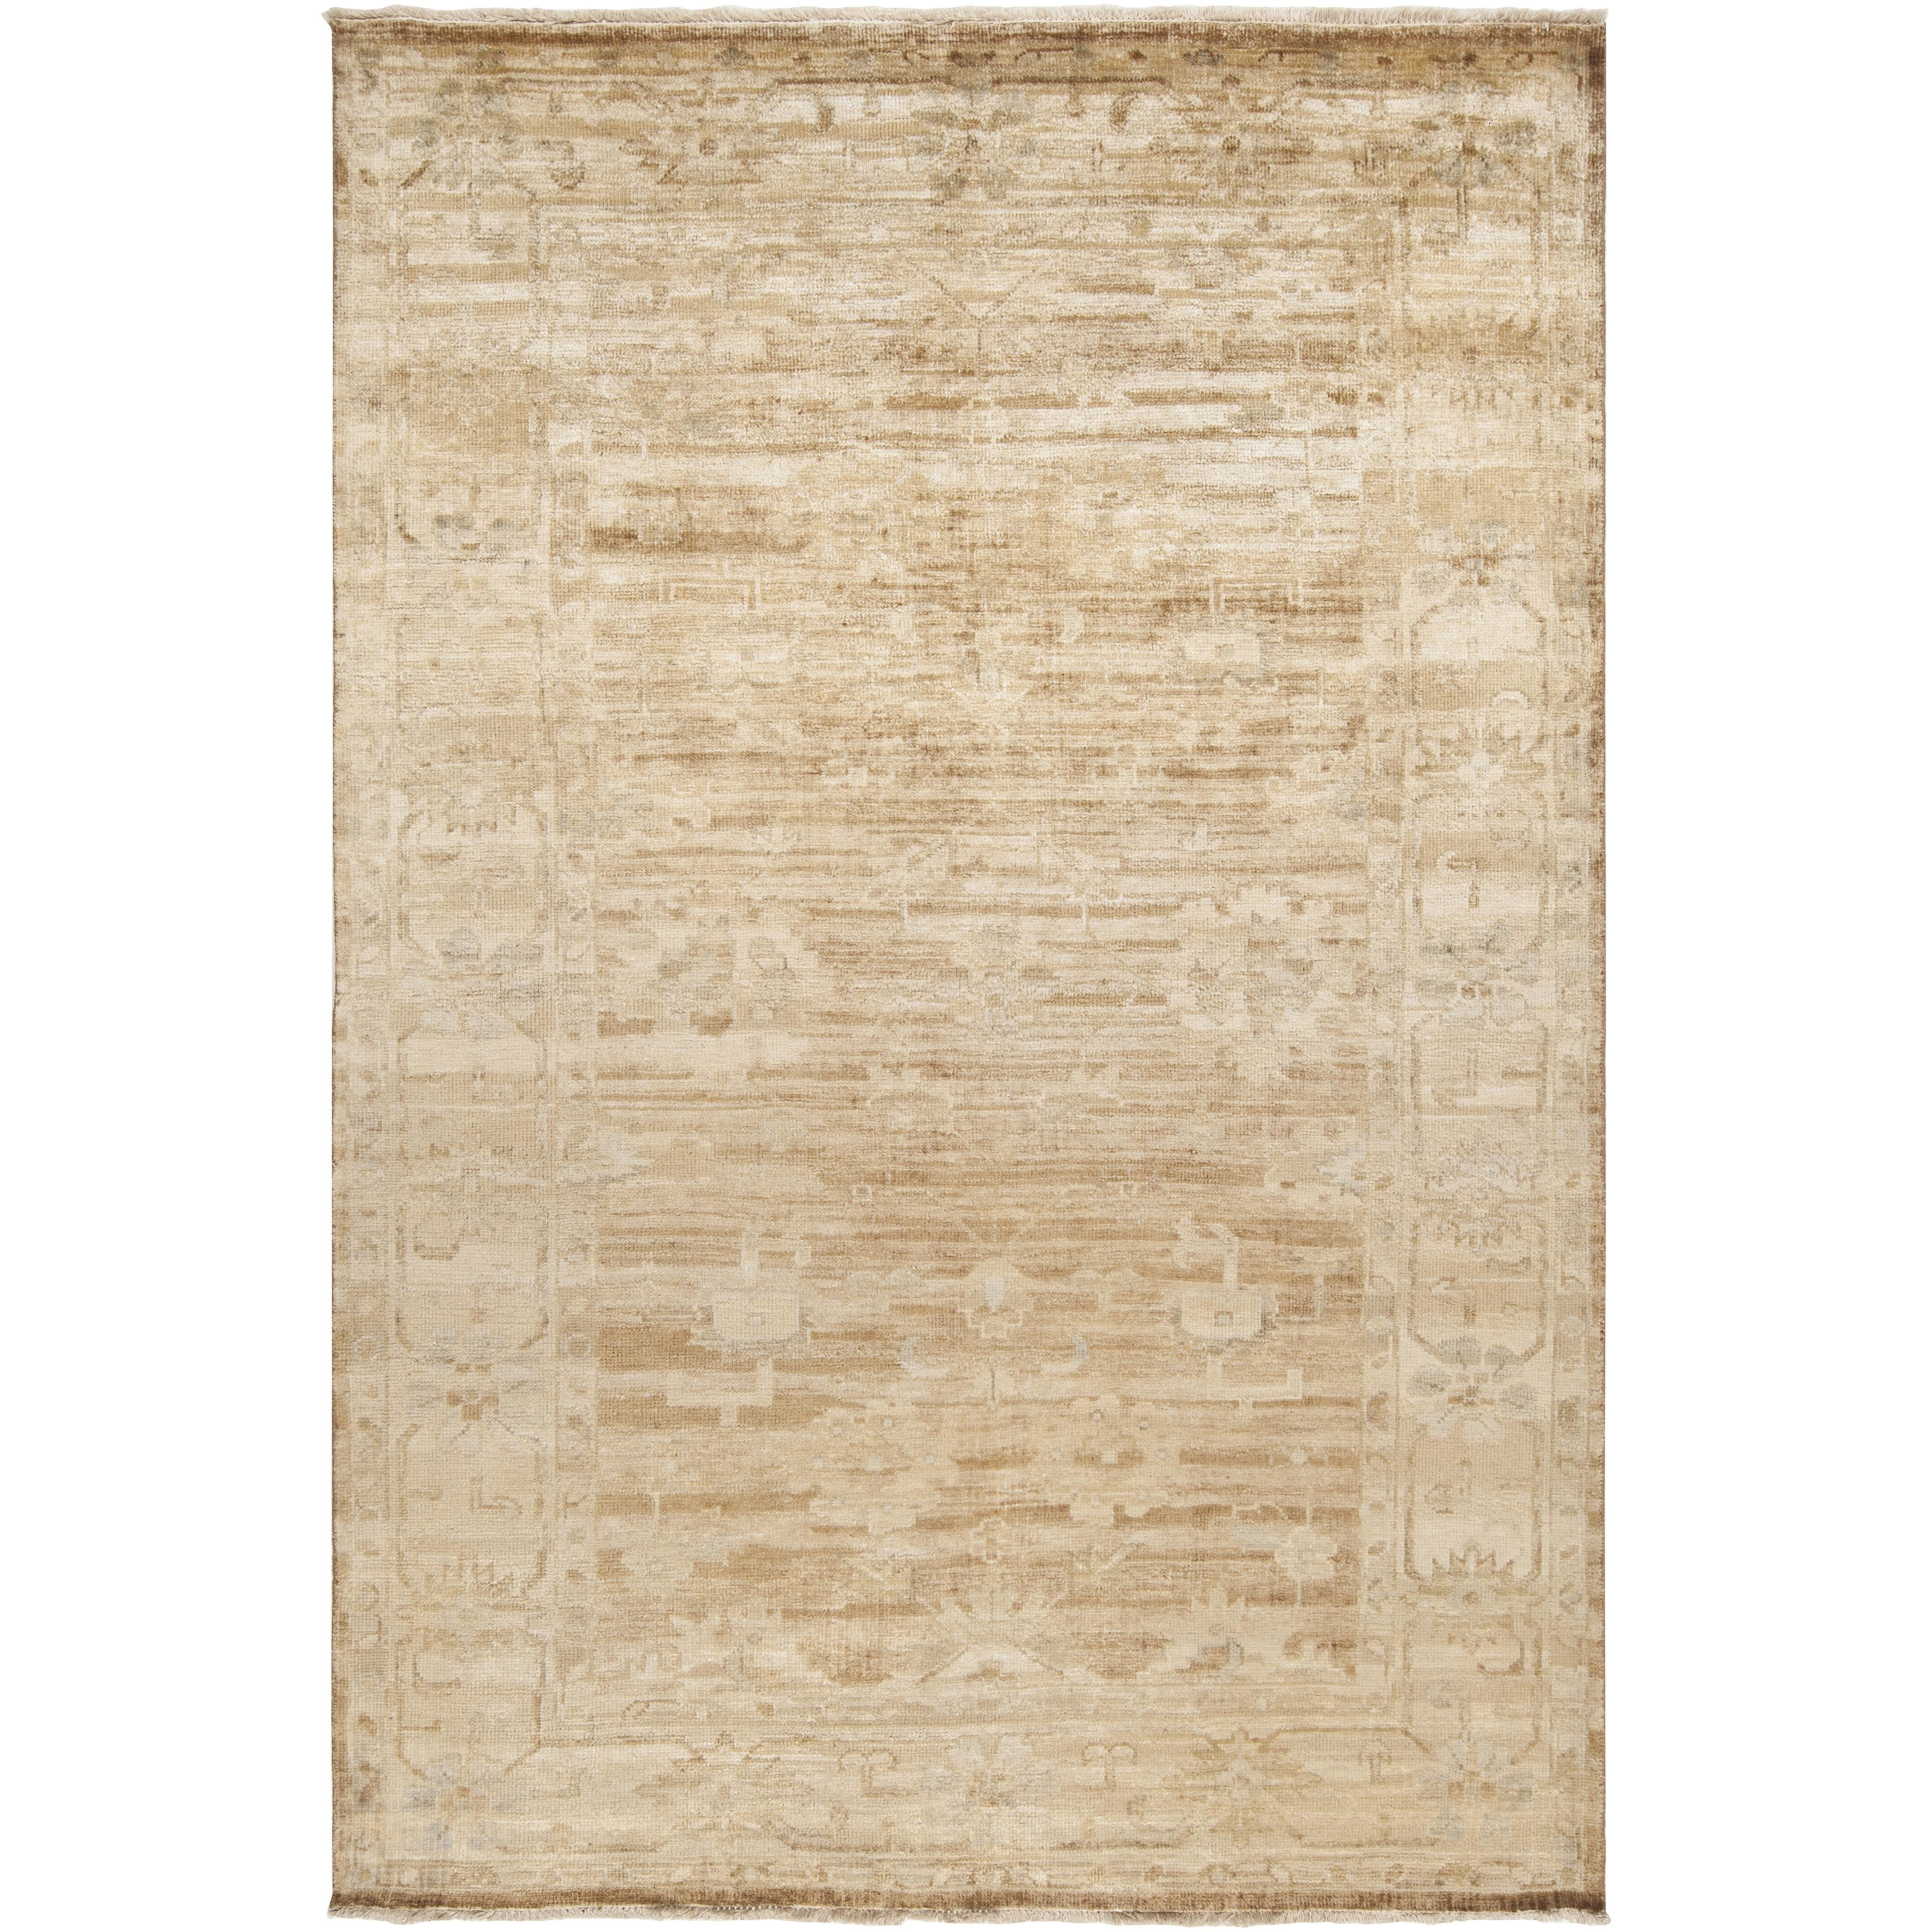 "Surya Rugs Hillcrest 5'6"" x 8'6"" - Item Number: HIL9012-5686"